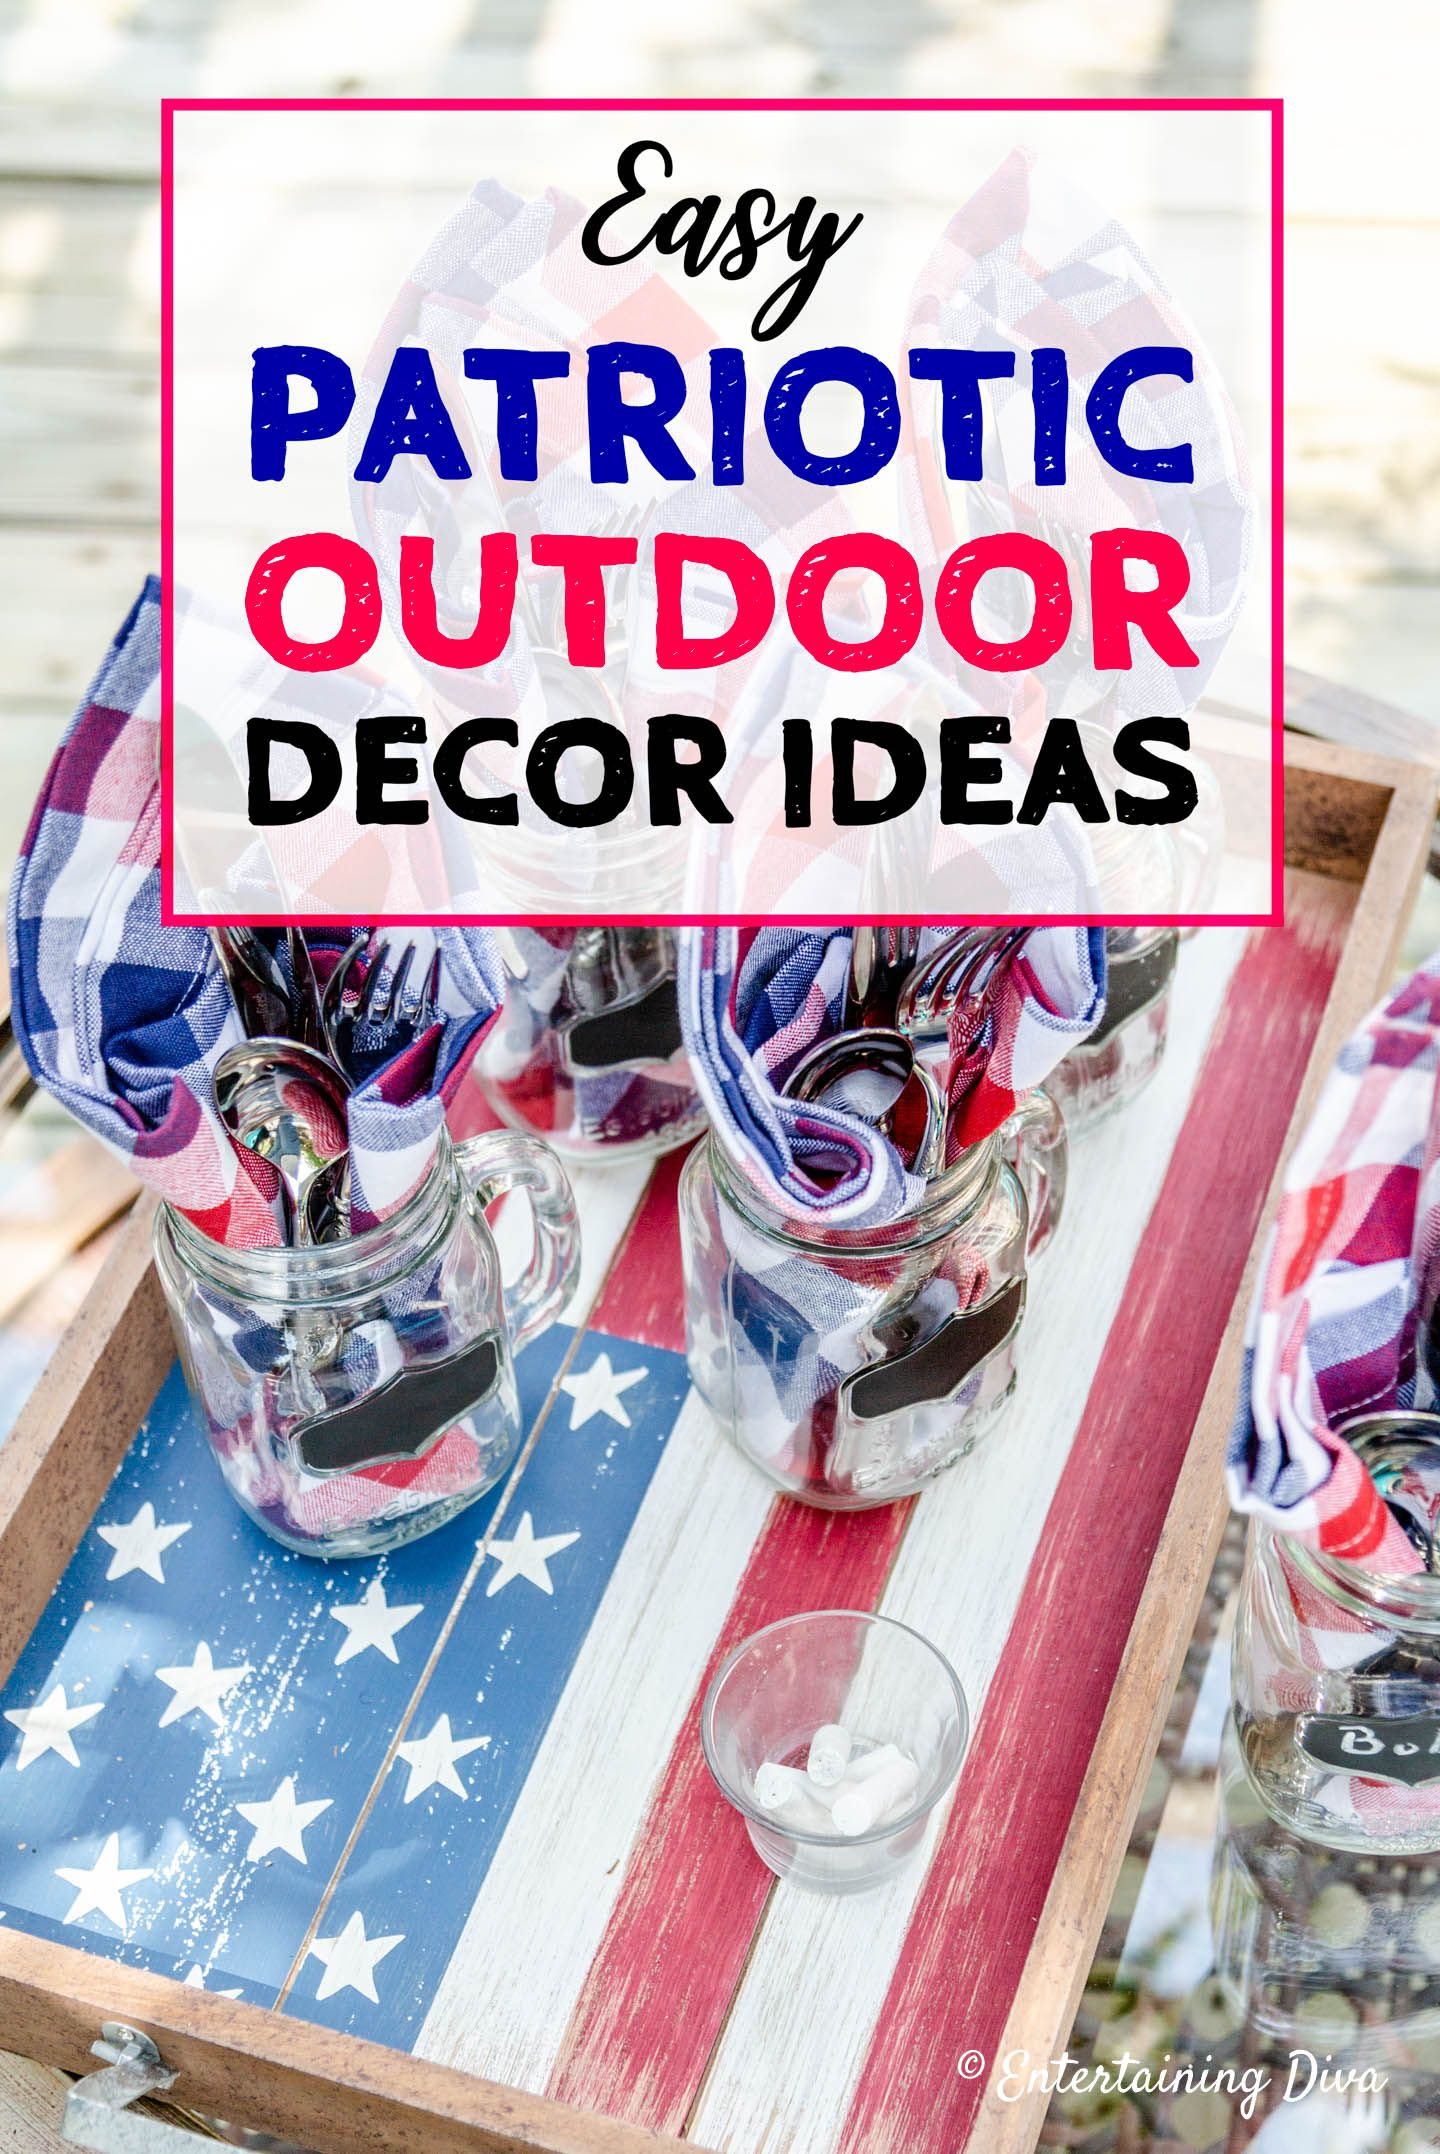 Easy 4th of July Outdoor Decorations   Patriotic ...